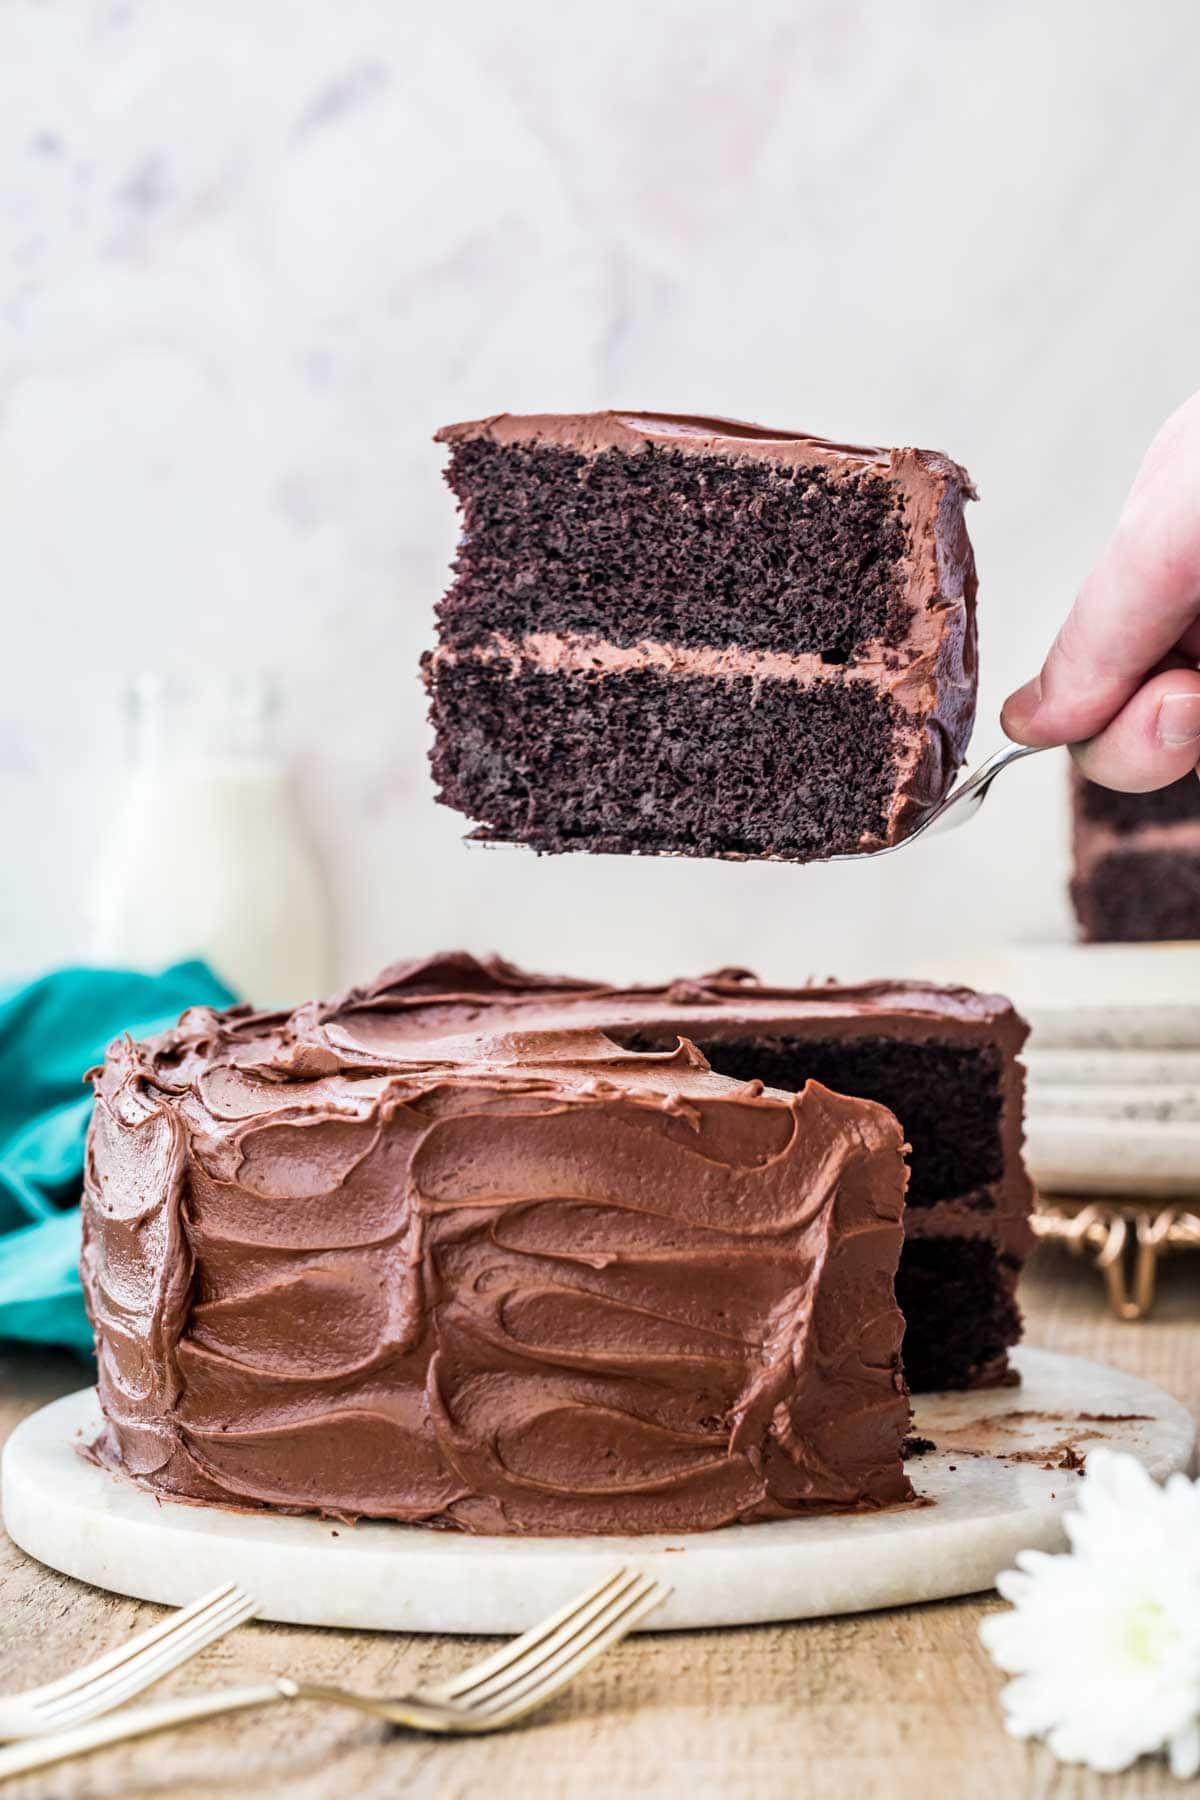 Devil's food cake with a slice being taken out